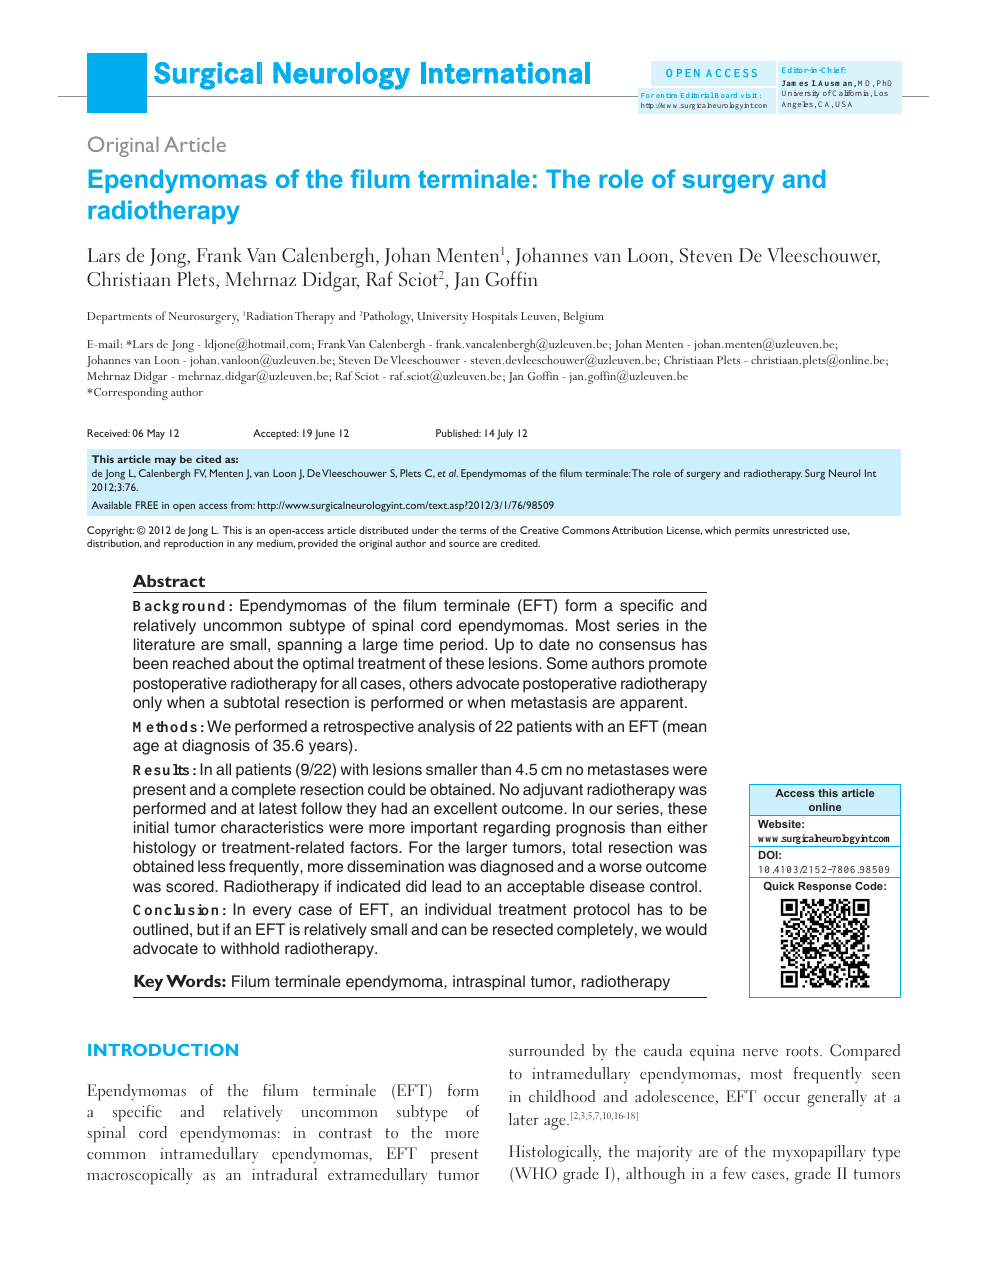 Ependymomas Of The Filum Terminale The Role Of Surgery And Radiotherapy Topic Of Research Paper In Clinical Medicine Download Scholarly Article Pdf And Read For Free On Cyberleninka Open Science Hub On the forefront of personalized medicine. ependymomas of the filum terminale the